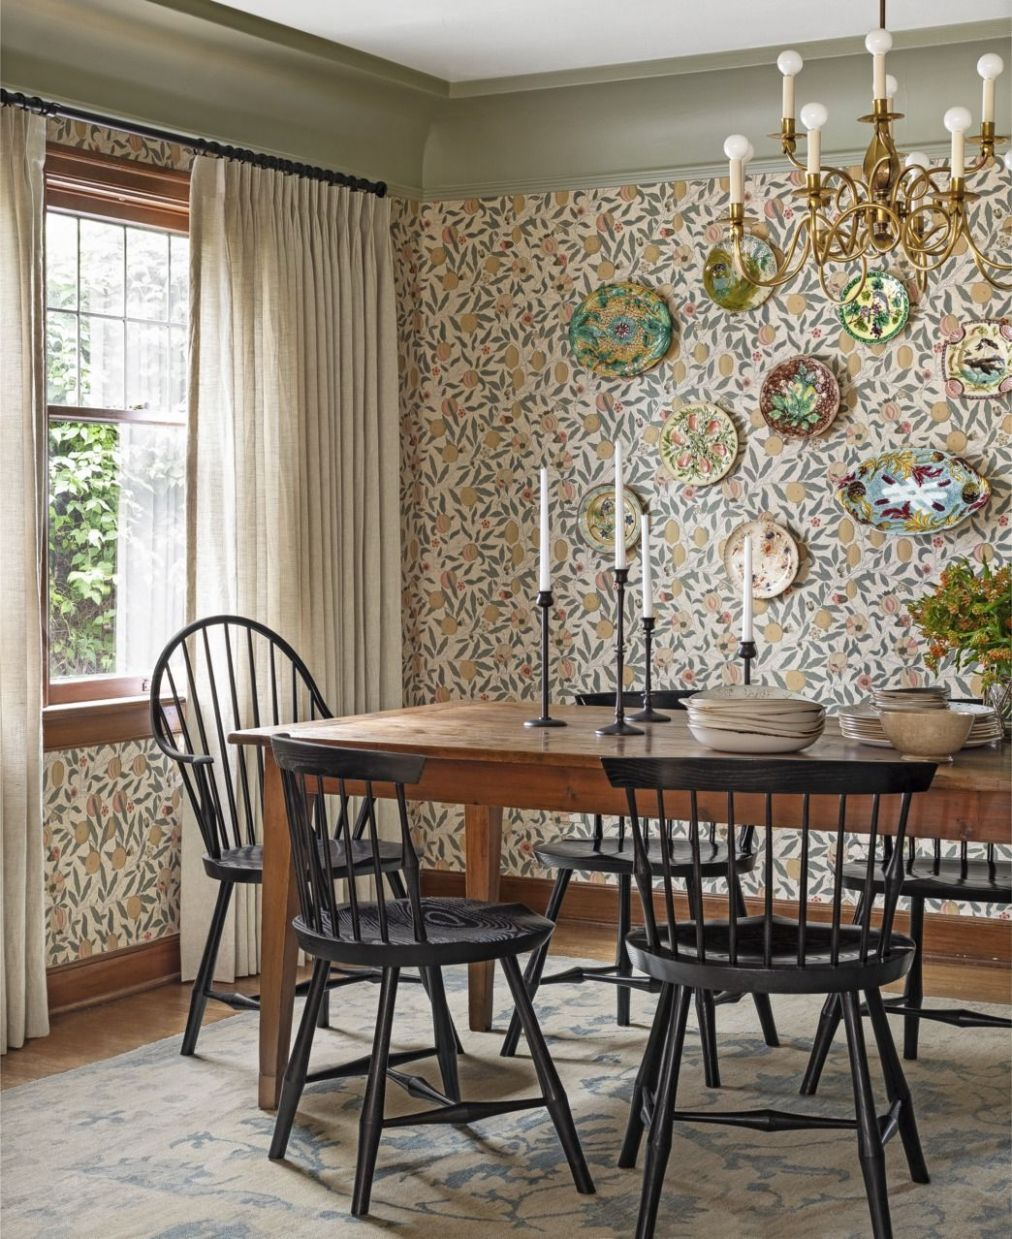 12 Best Dining Room Decorating Ideas - Country Dining Room Decor - dining room accessories ideas